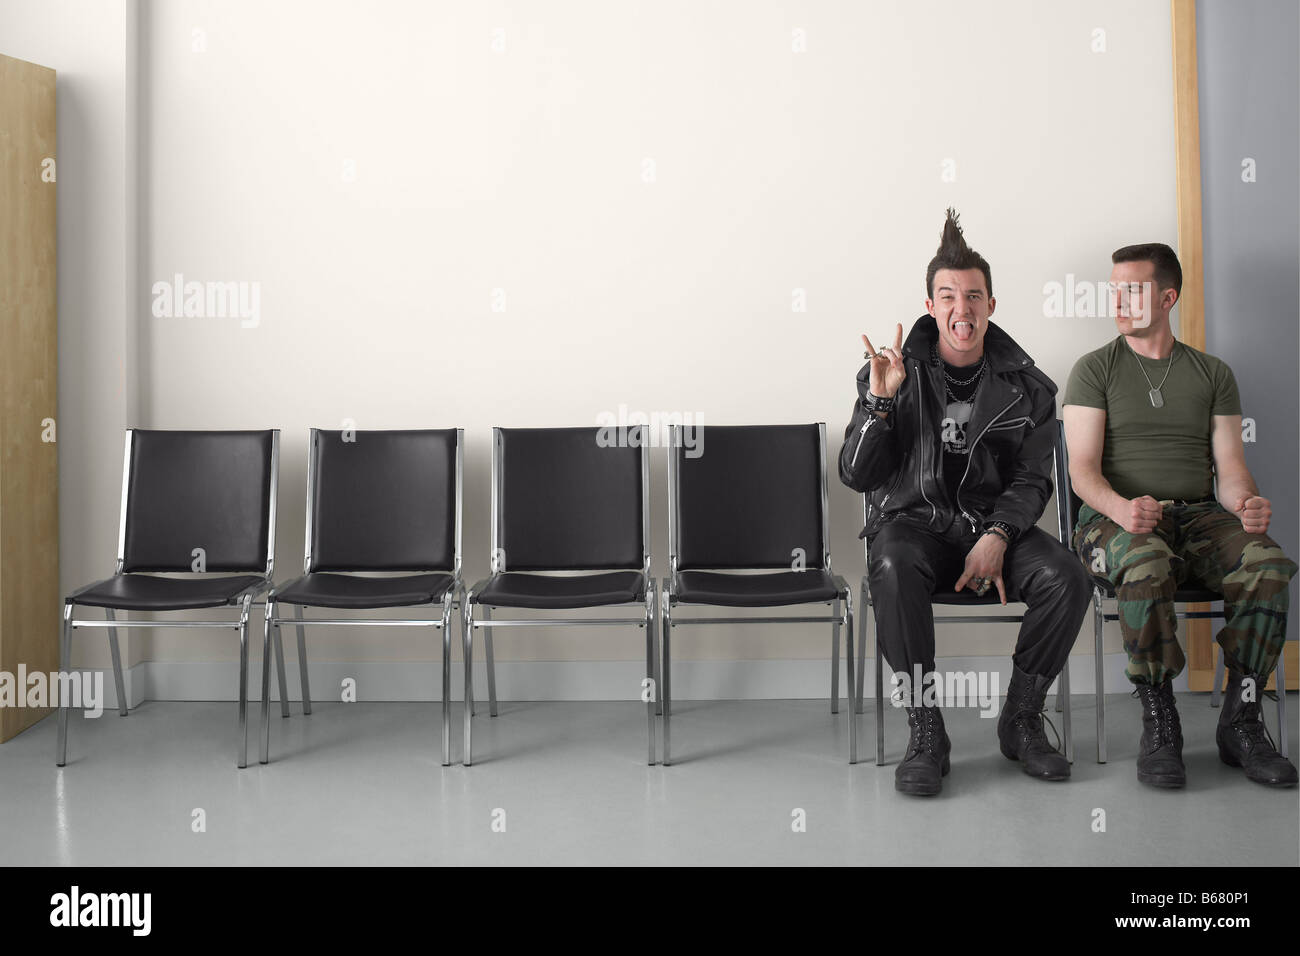 Punk and Soldier in Waiting Area Stock Photo